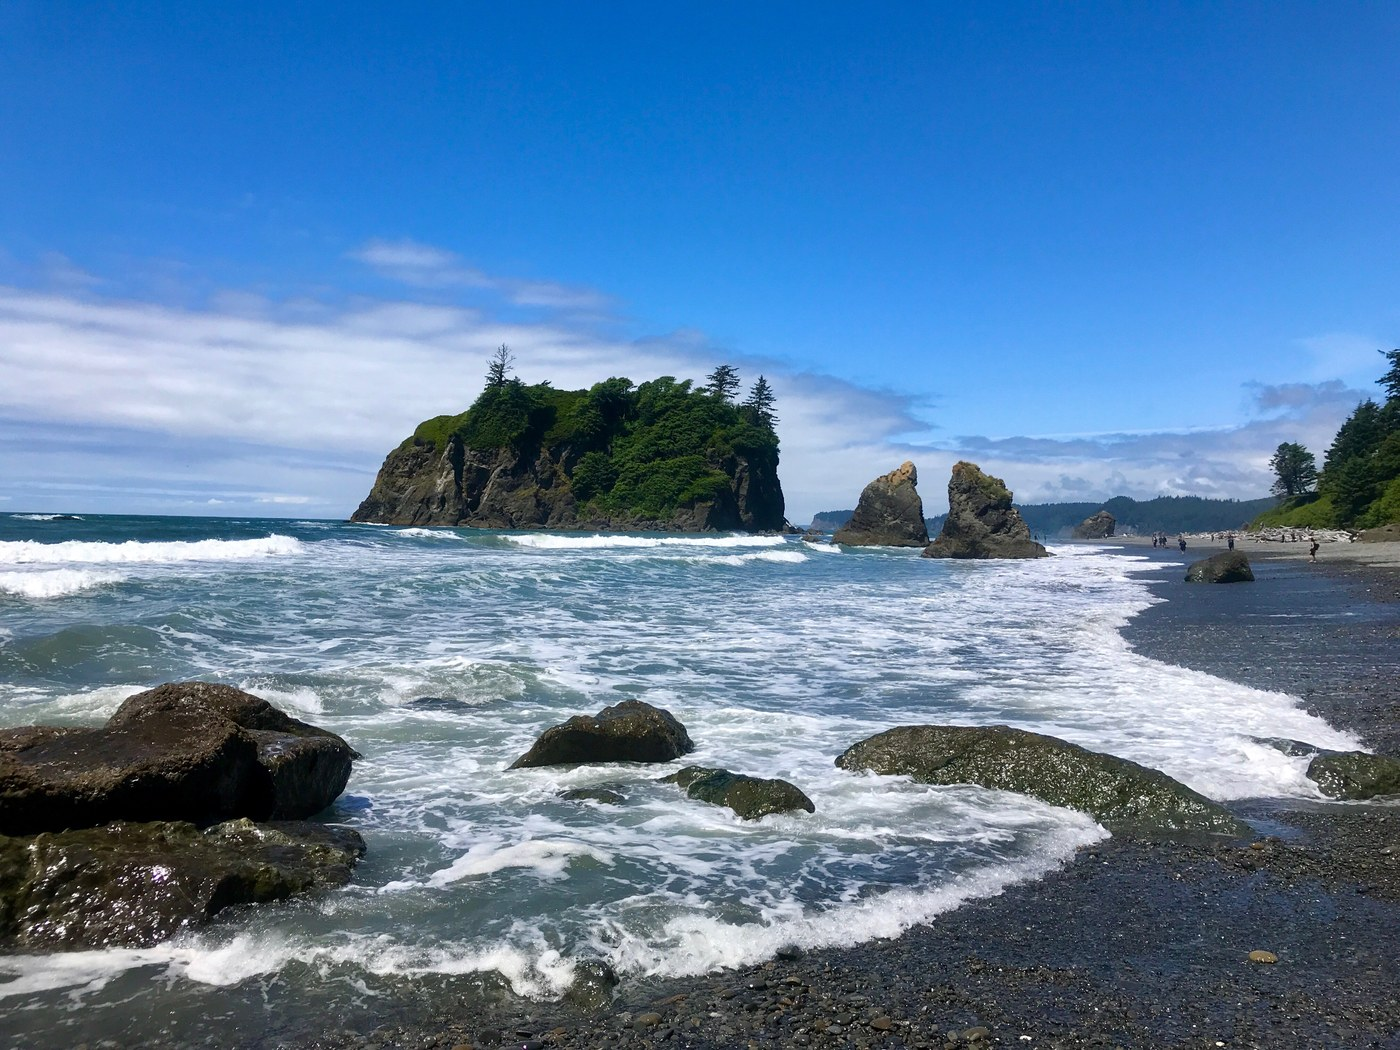 A stretch of beach with small waves crashing and a big haystack rock in the distance. Photo by egorup04.